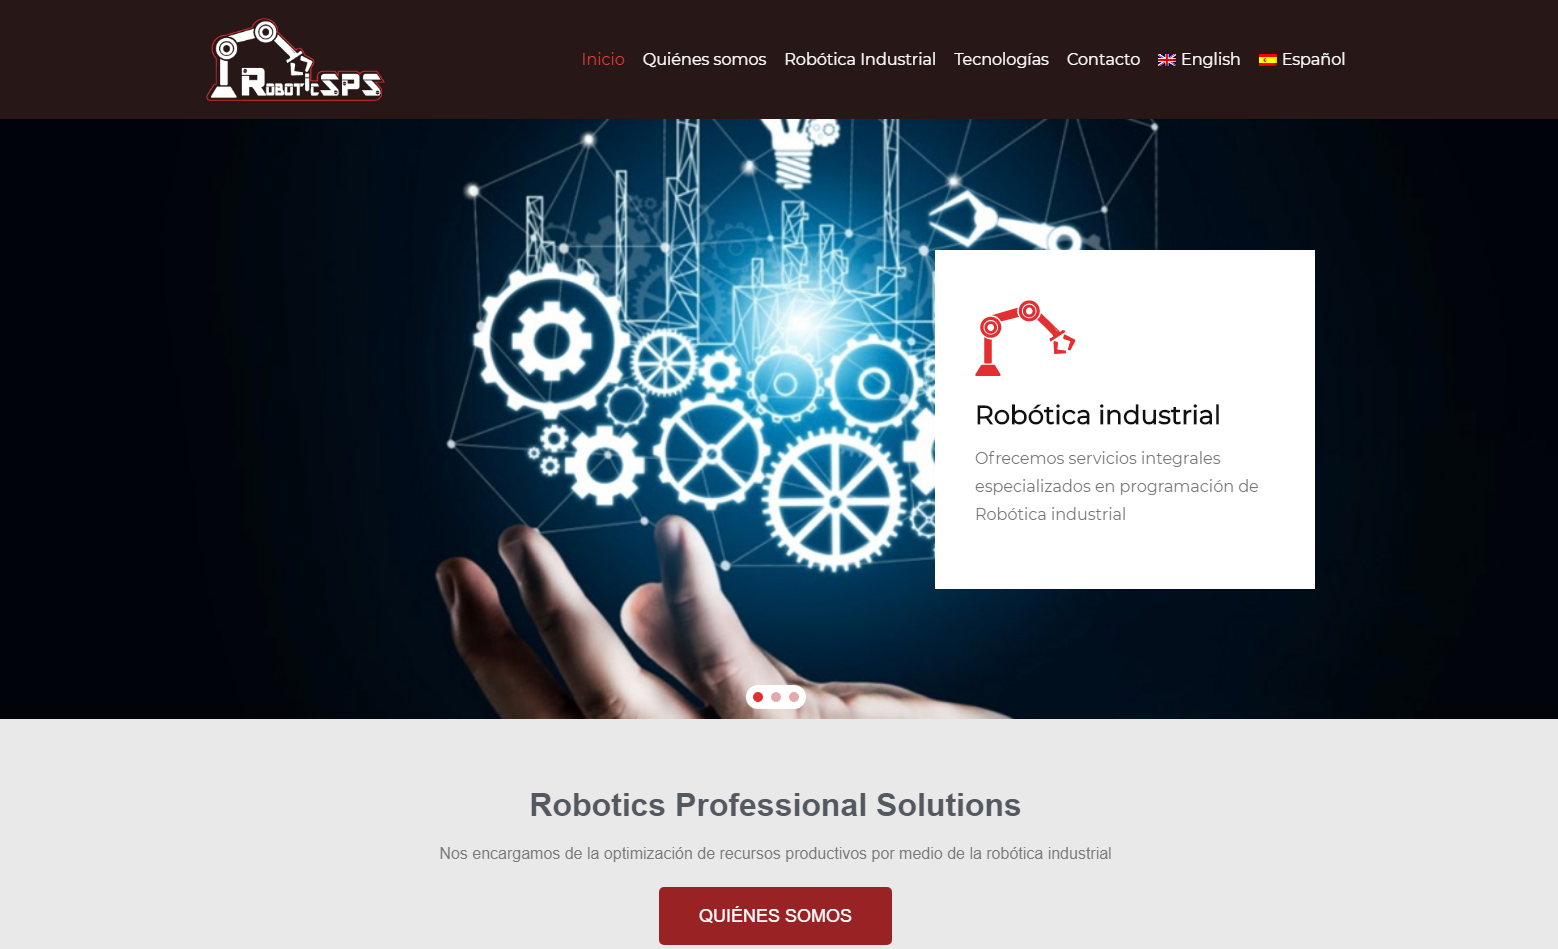 Robotics Professional Solutions